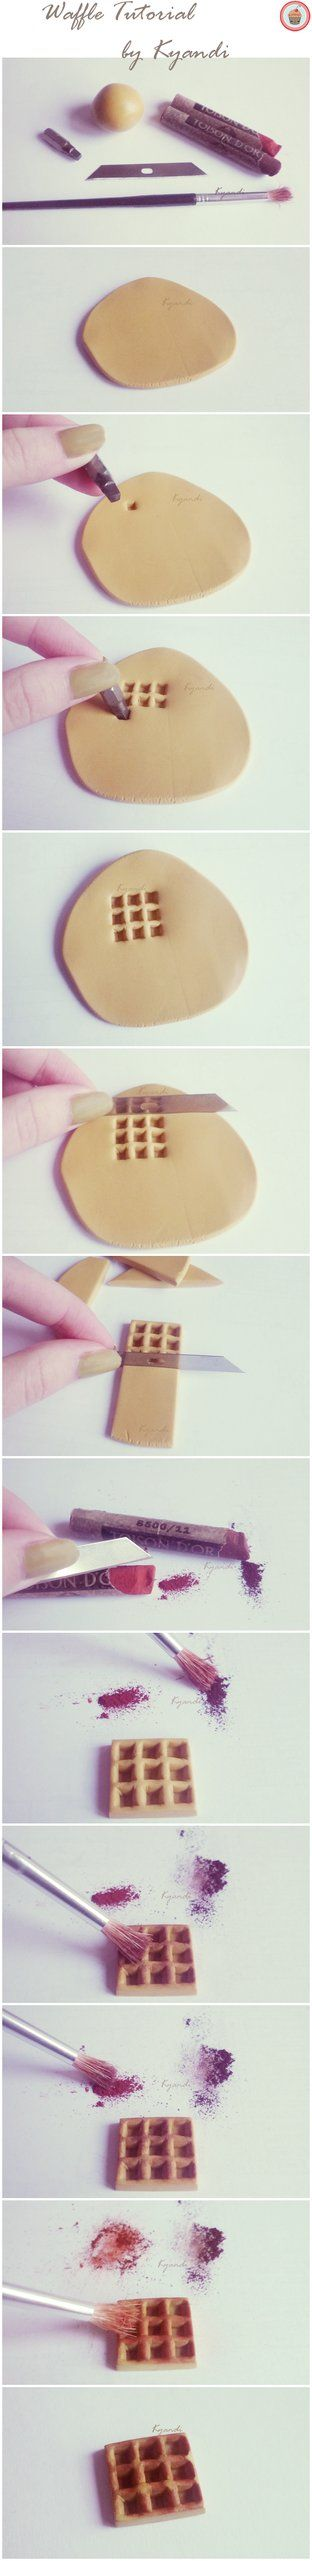 Polymer clay waffle tutorial by Kyandi-charms